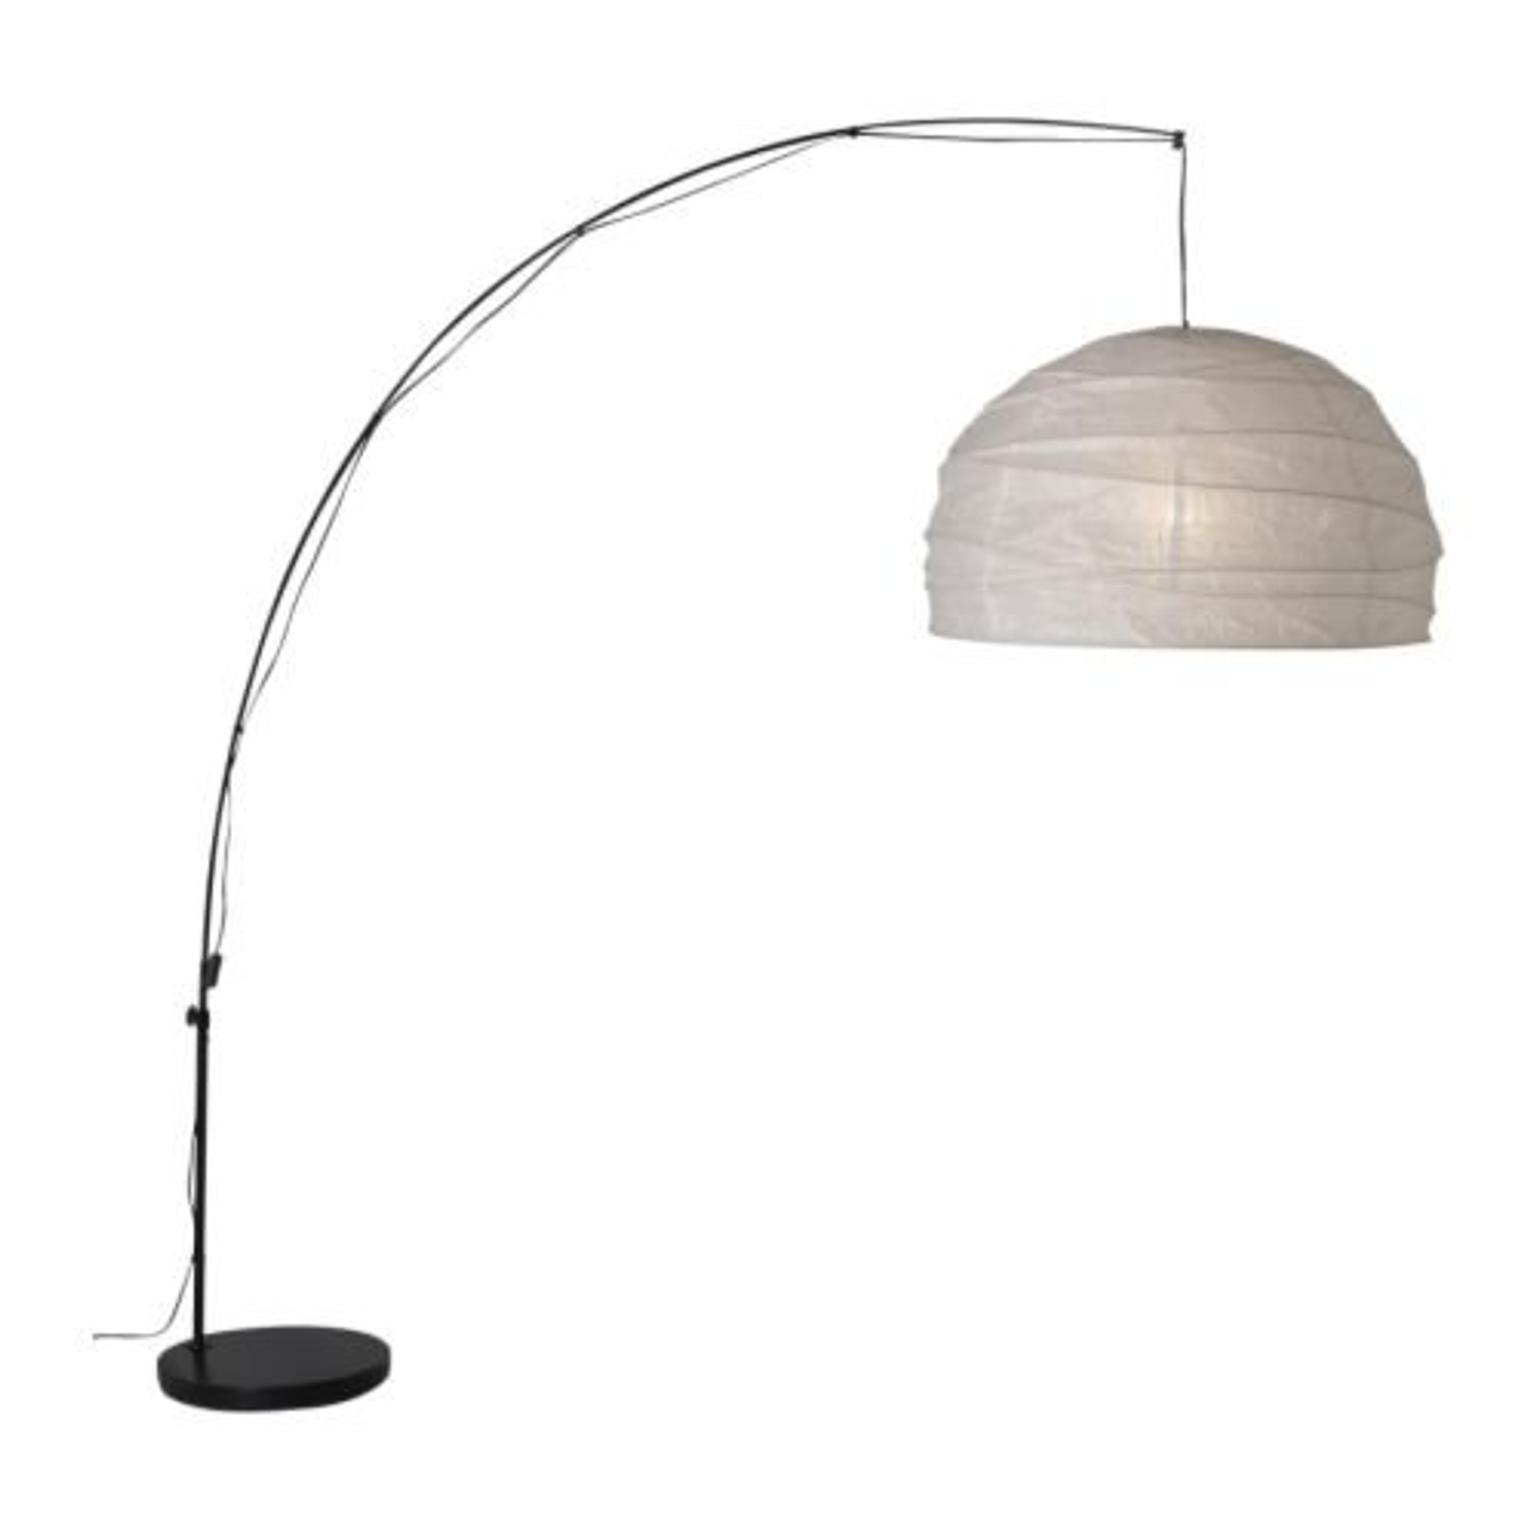 IKEA Regolit bow floor lamp blackwhite